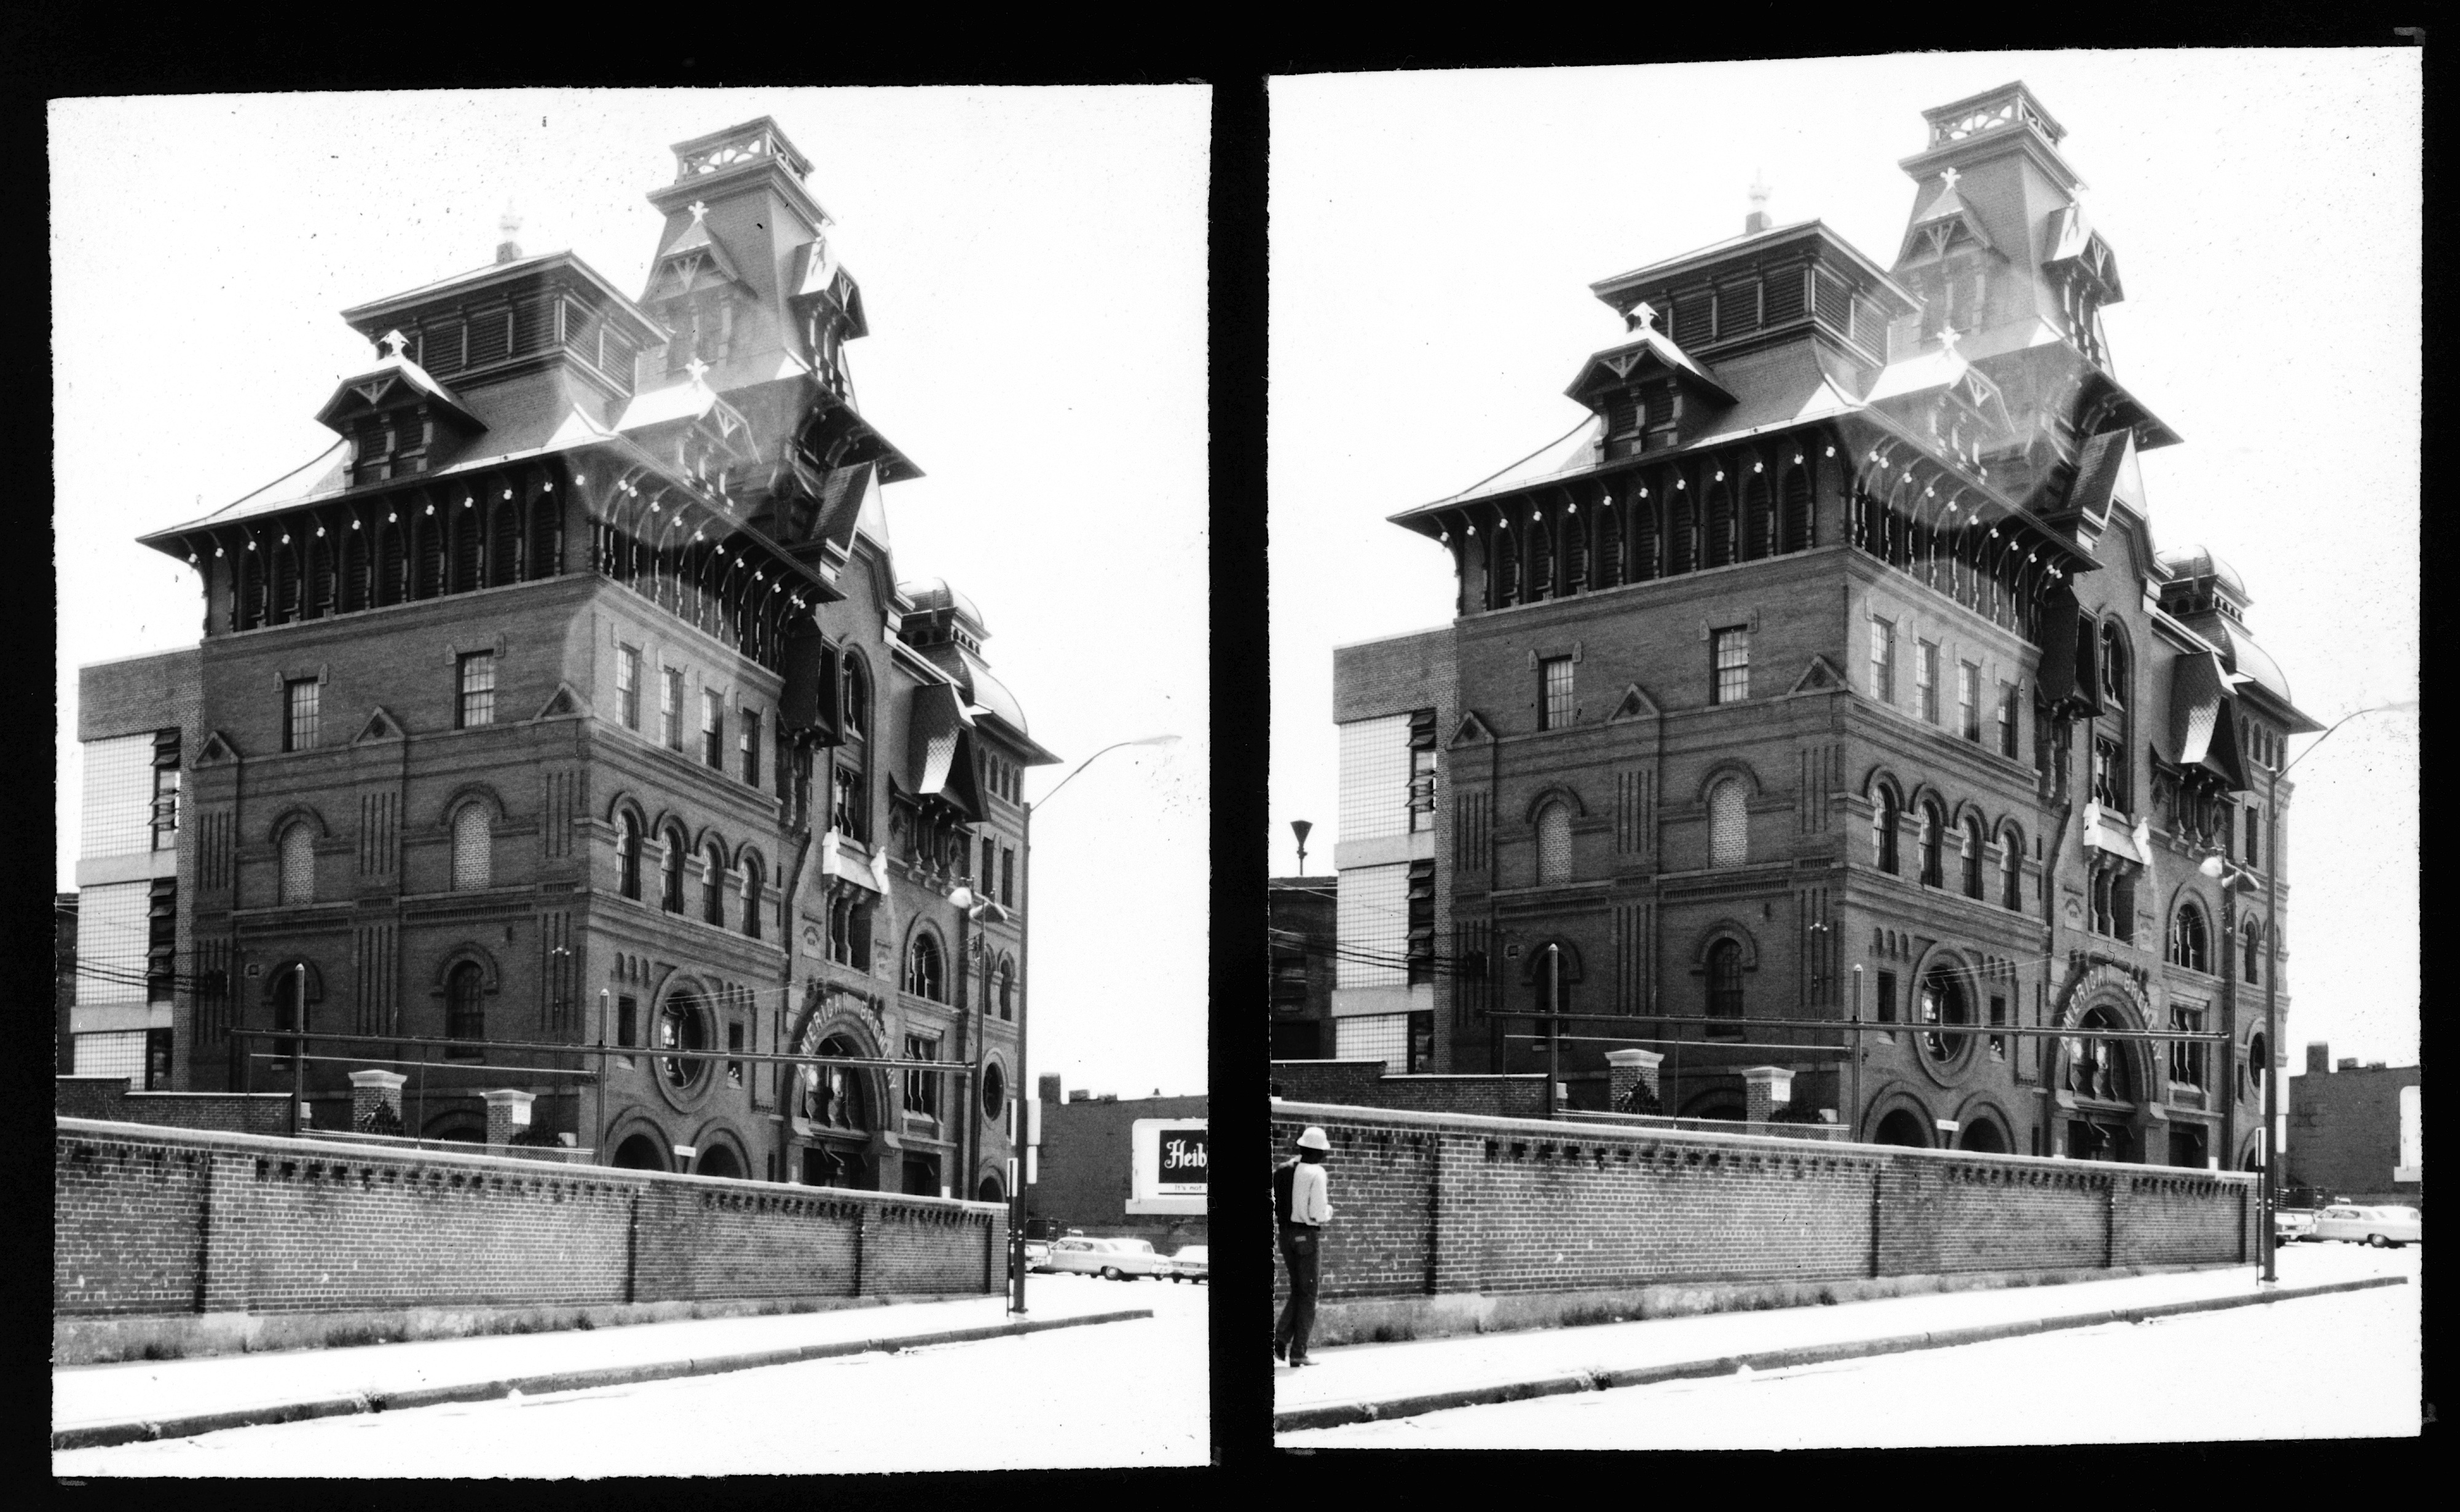 Incredible Old Photo of the Wiessner Brewery